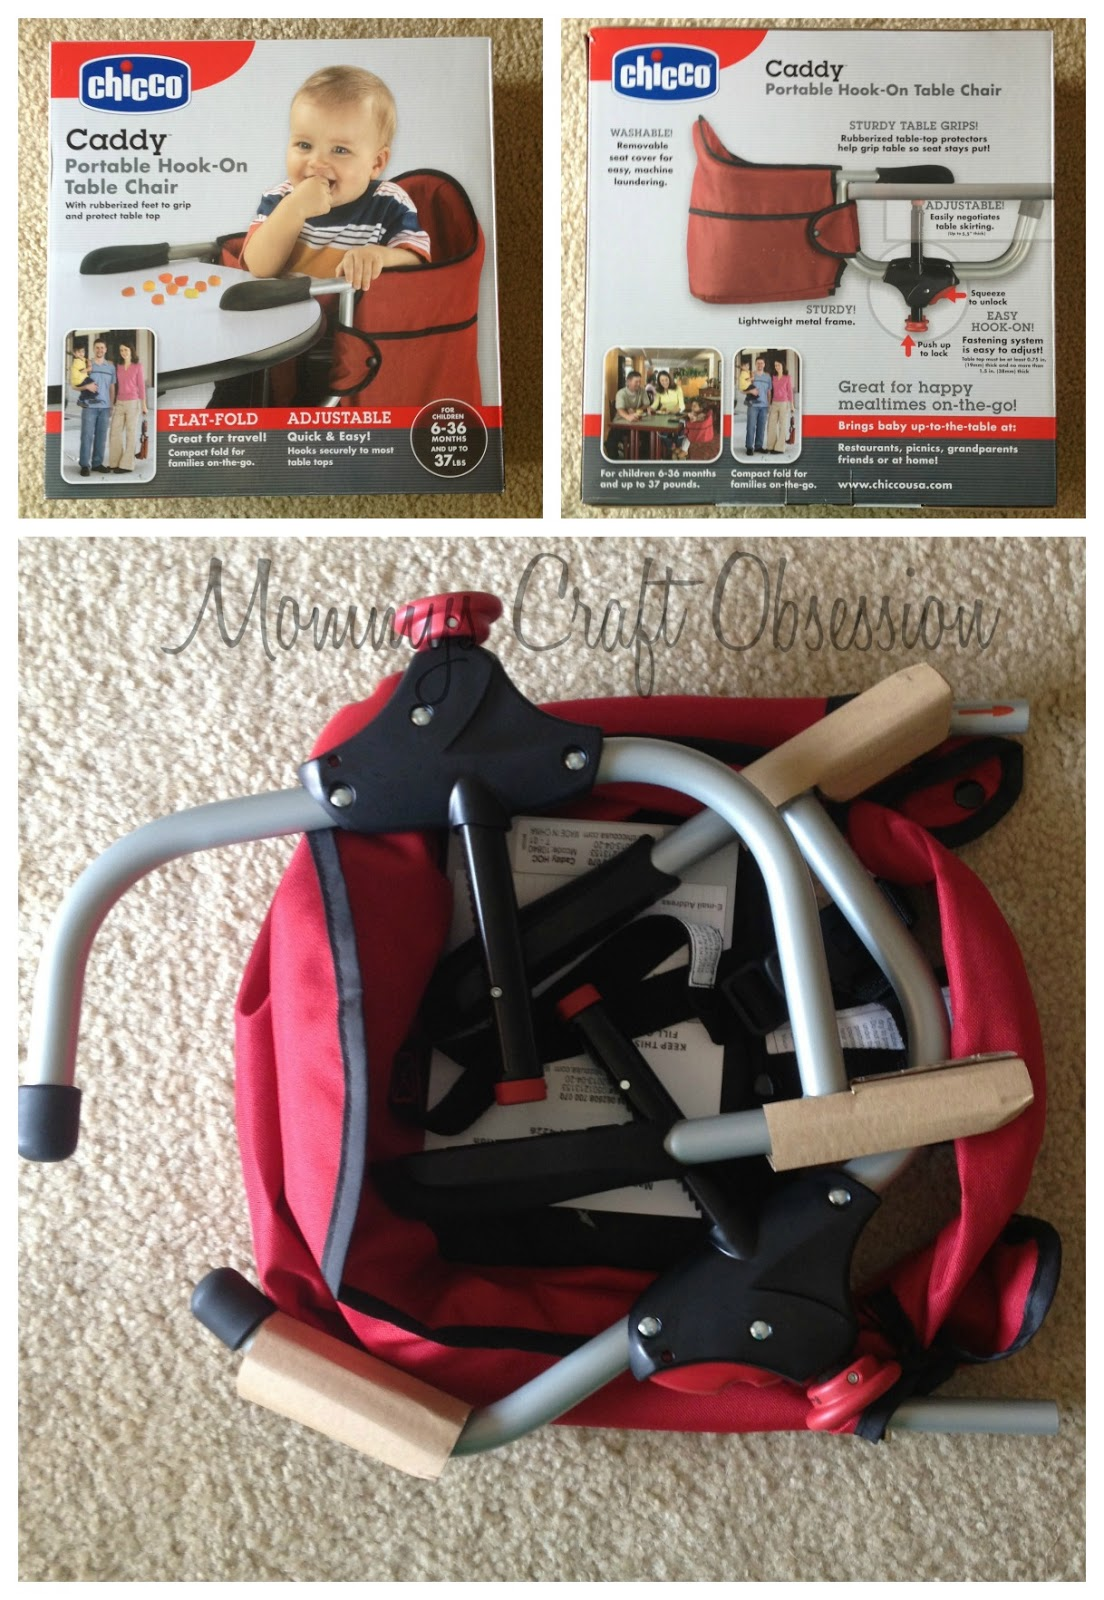 hook on chair best office for bad back mommy s obsessions chicco caddy high review giveaway